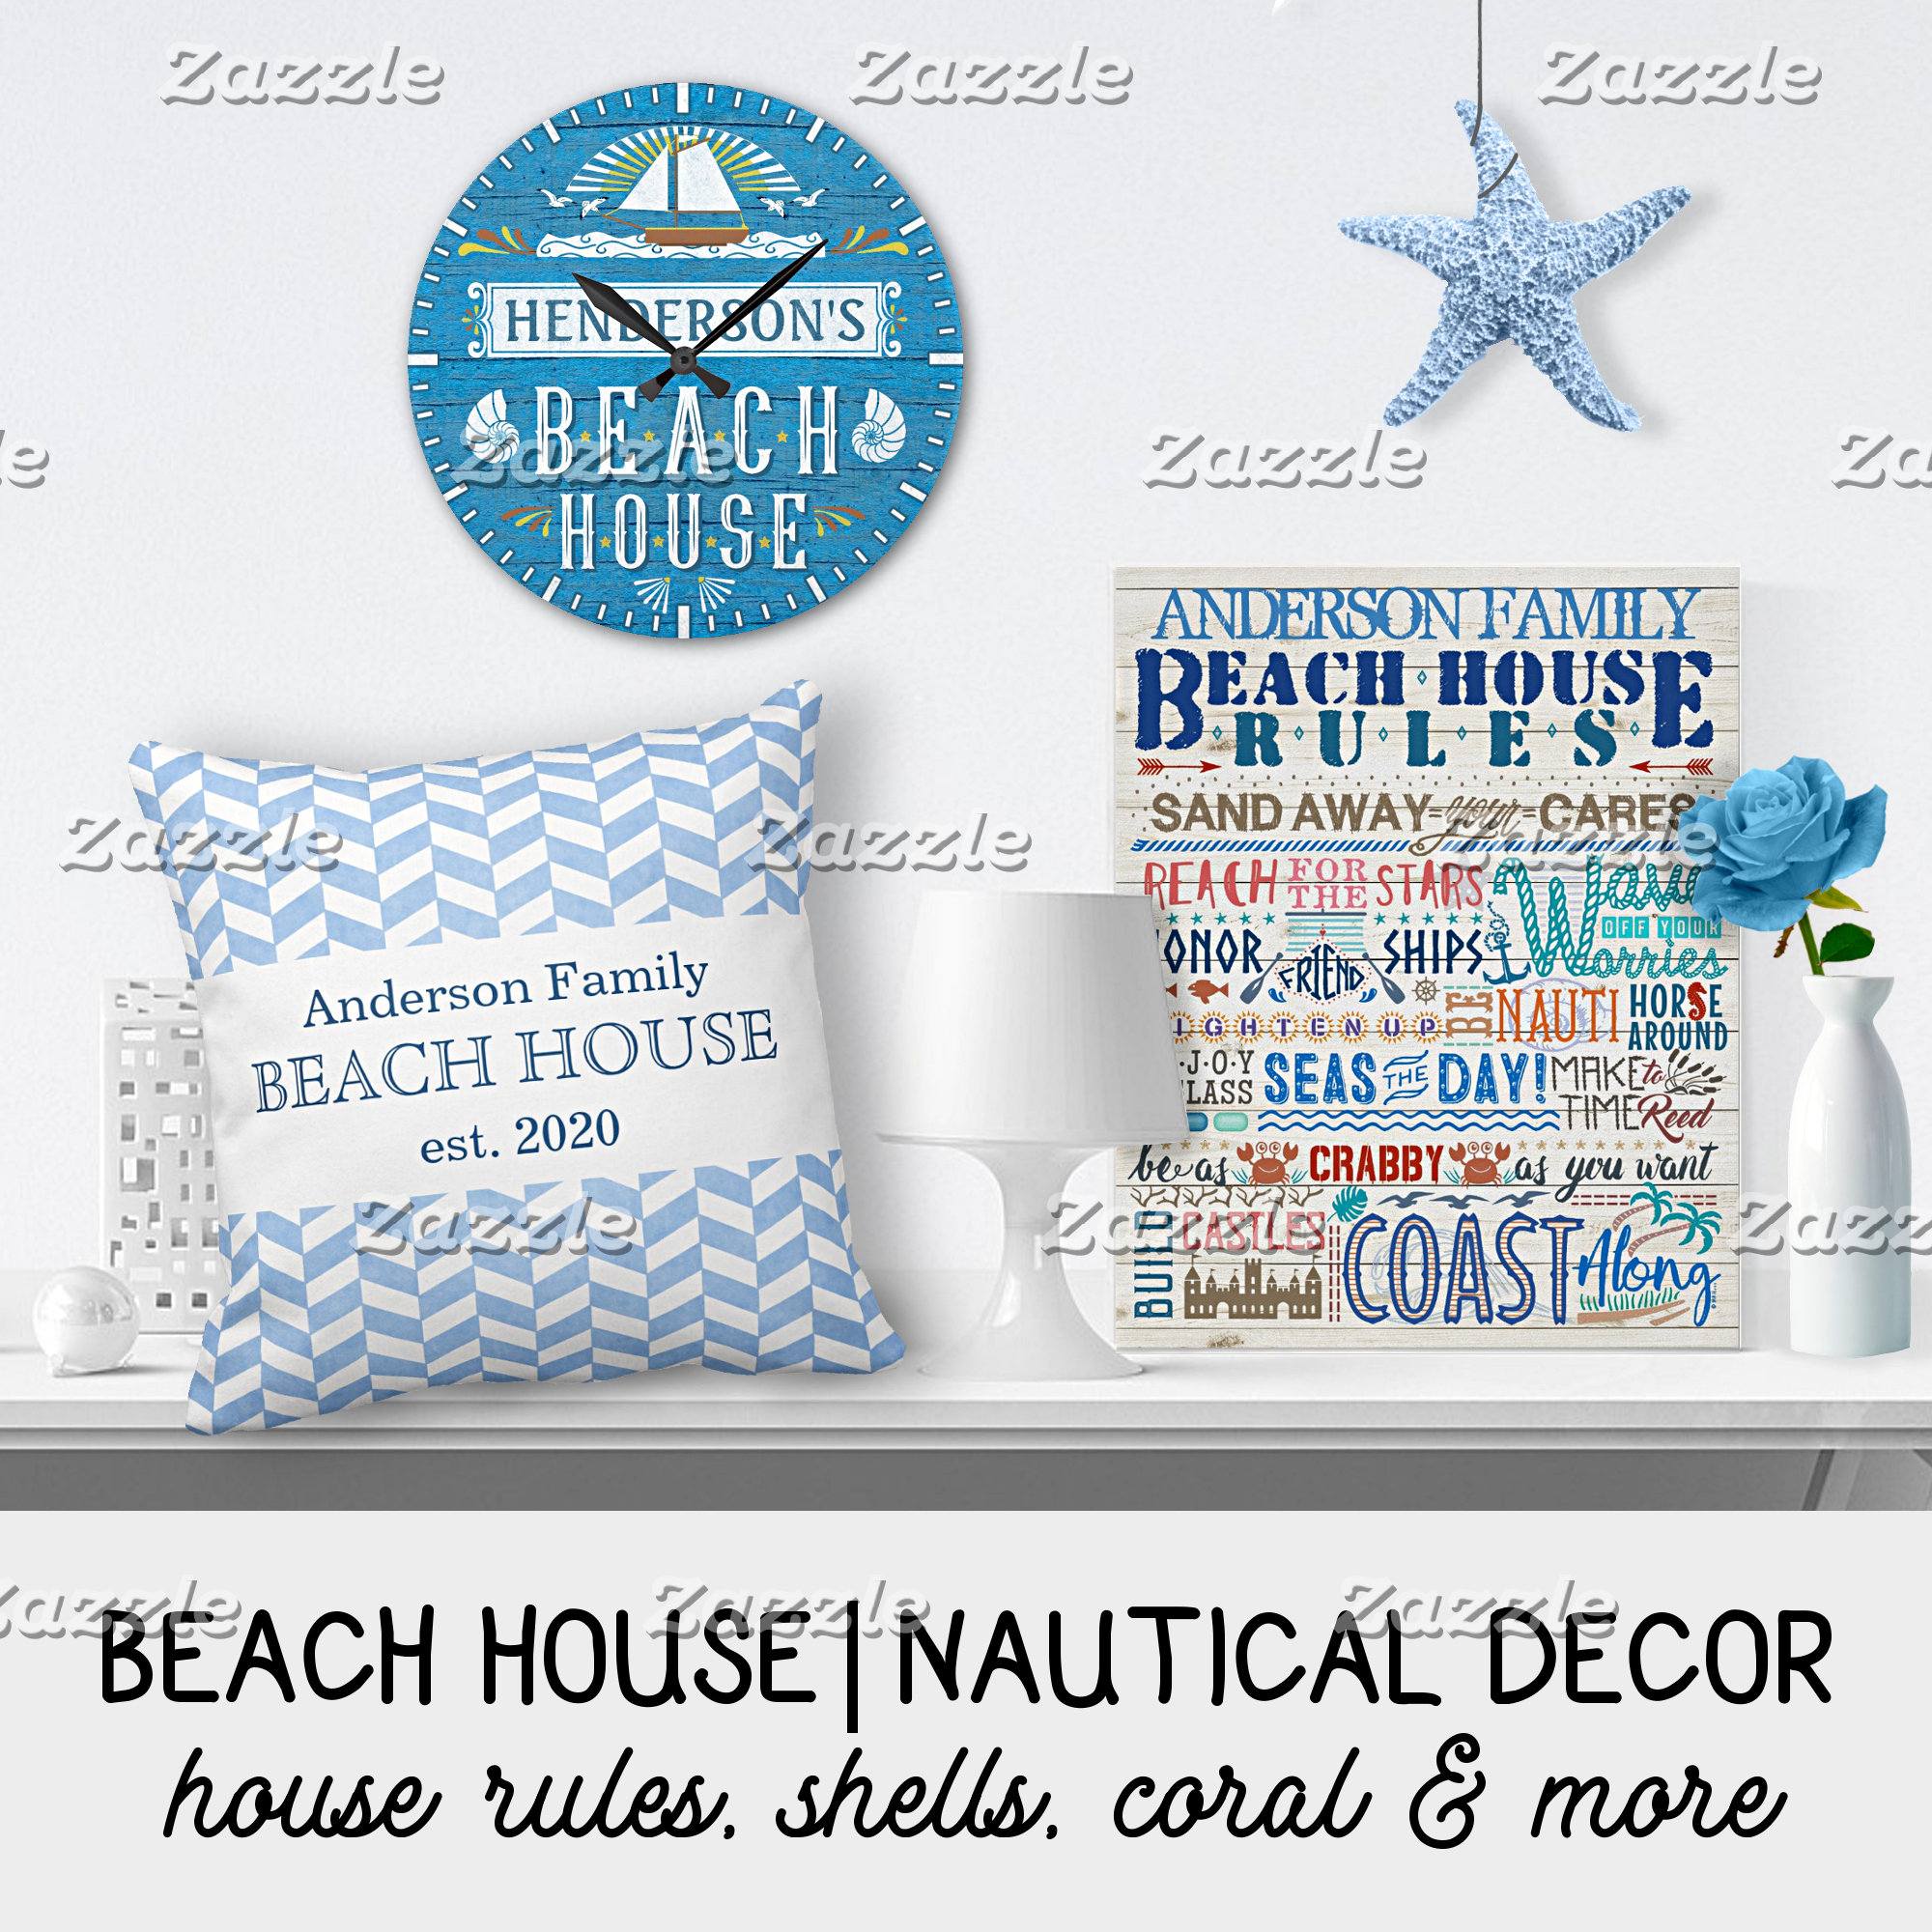 BEACH HOUSE + NAUTICAL DECOR